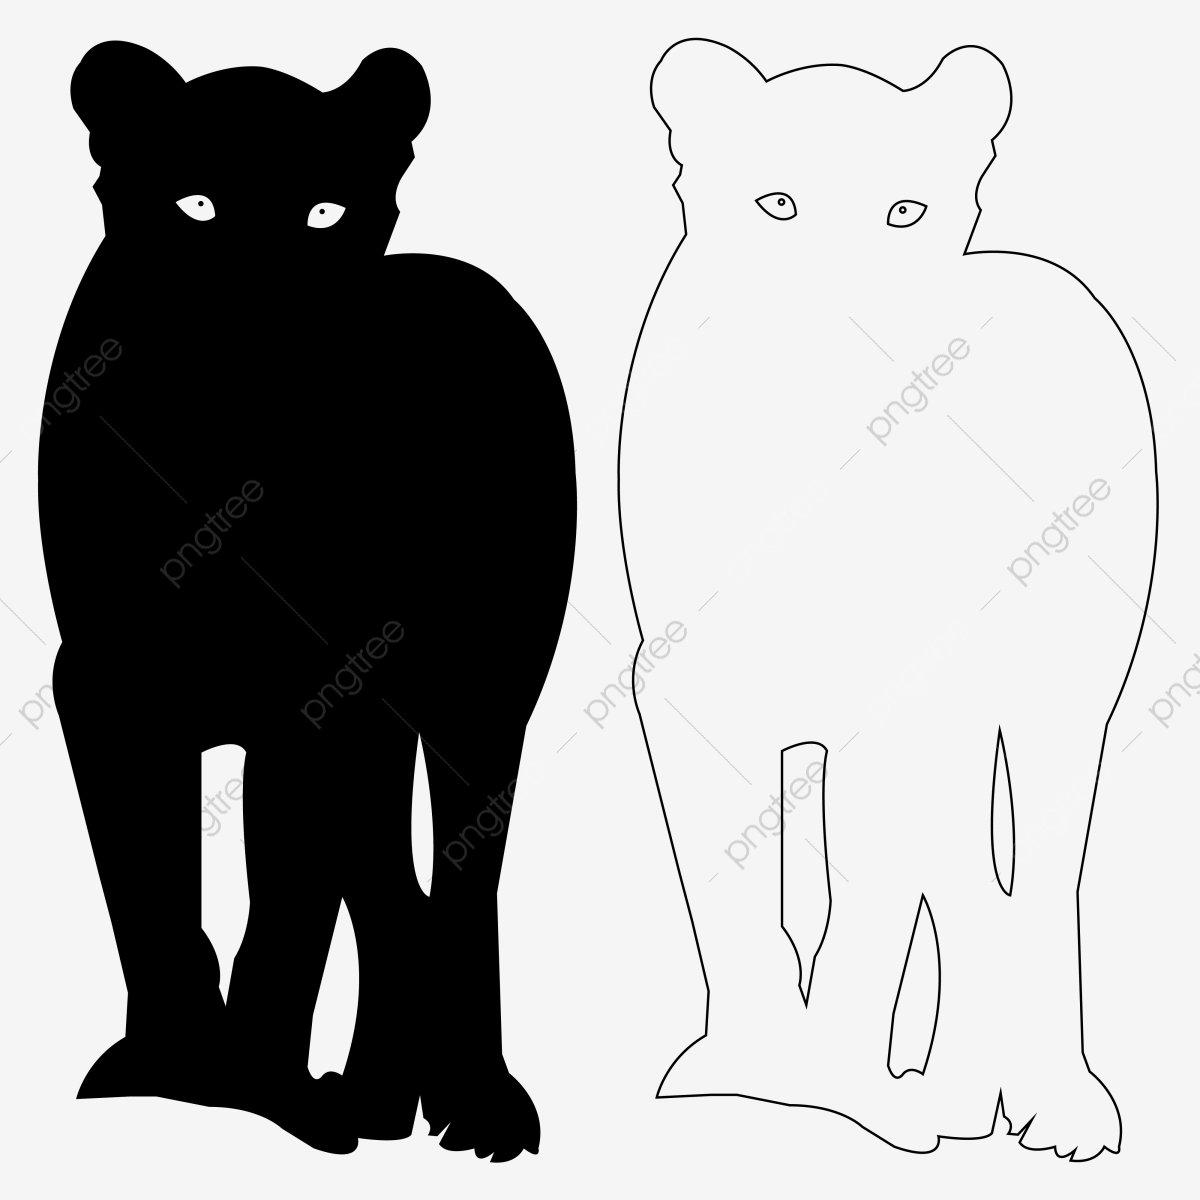 Lion Silhouette Outline Vector Icon Set Panther Clipart Icon Lion Png And Vector With Transparent Background For Free Download Download lion images and photos. https pngtree com freepng lion silhouette outline vector icon set 4005089 html